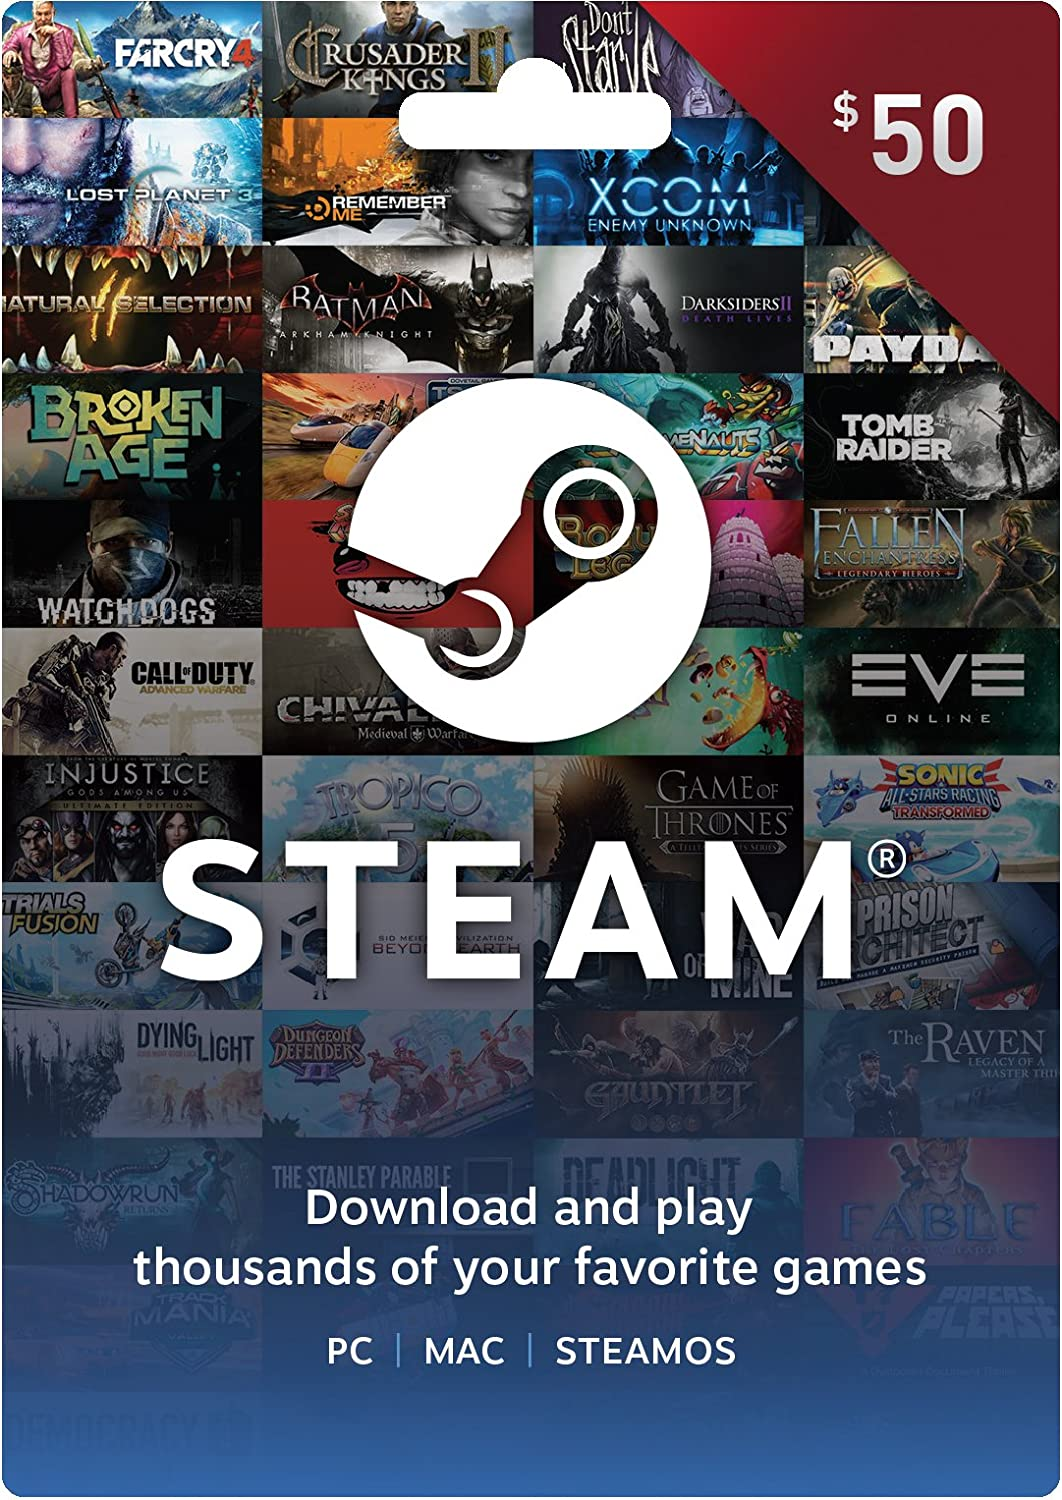 Amazon.com: Steam Gift Card - $20: pc: Video Games